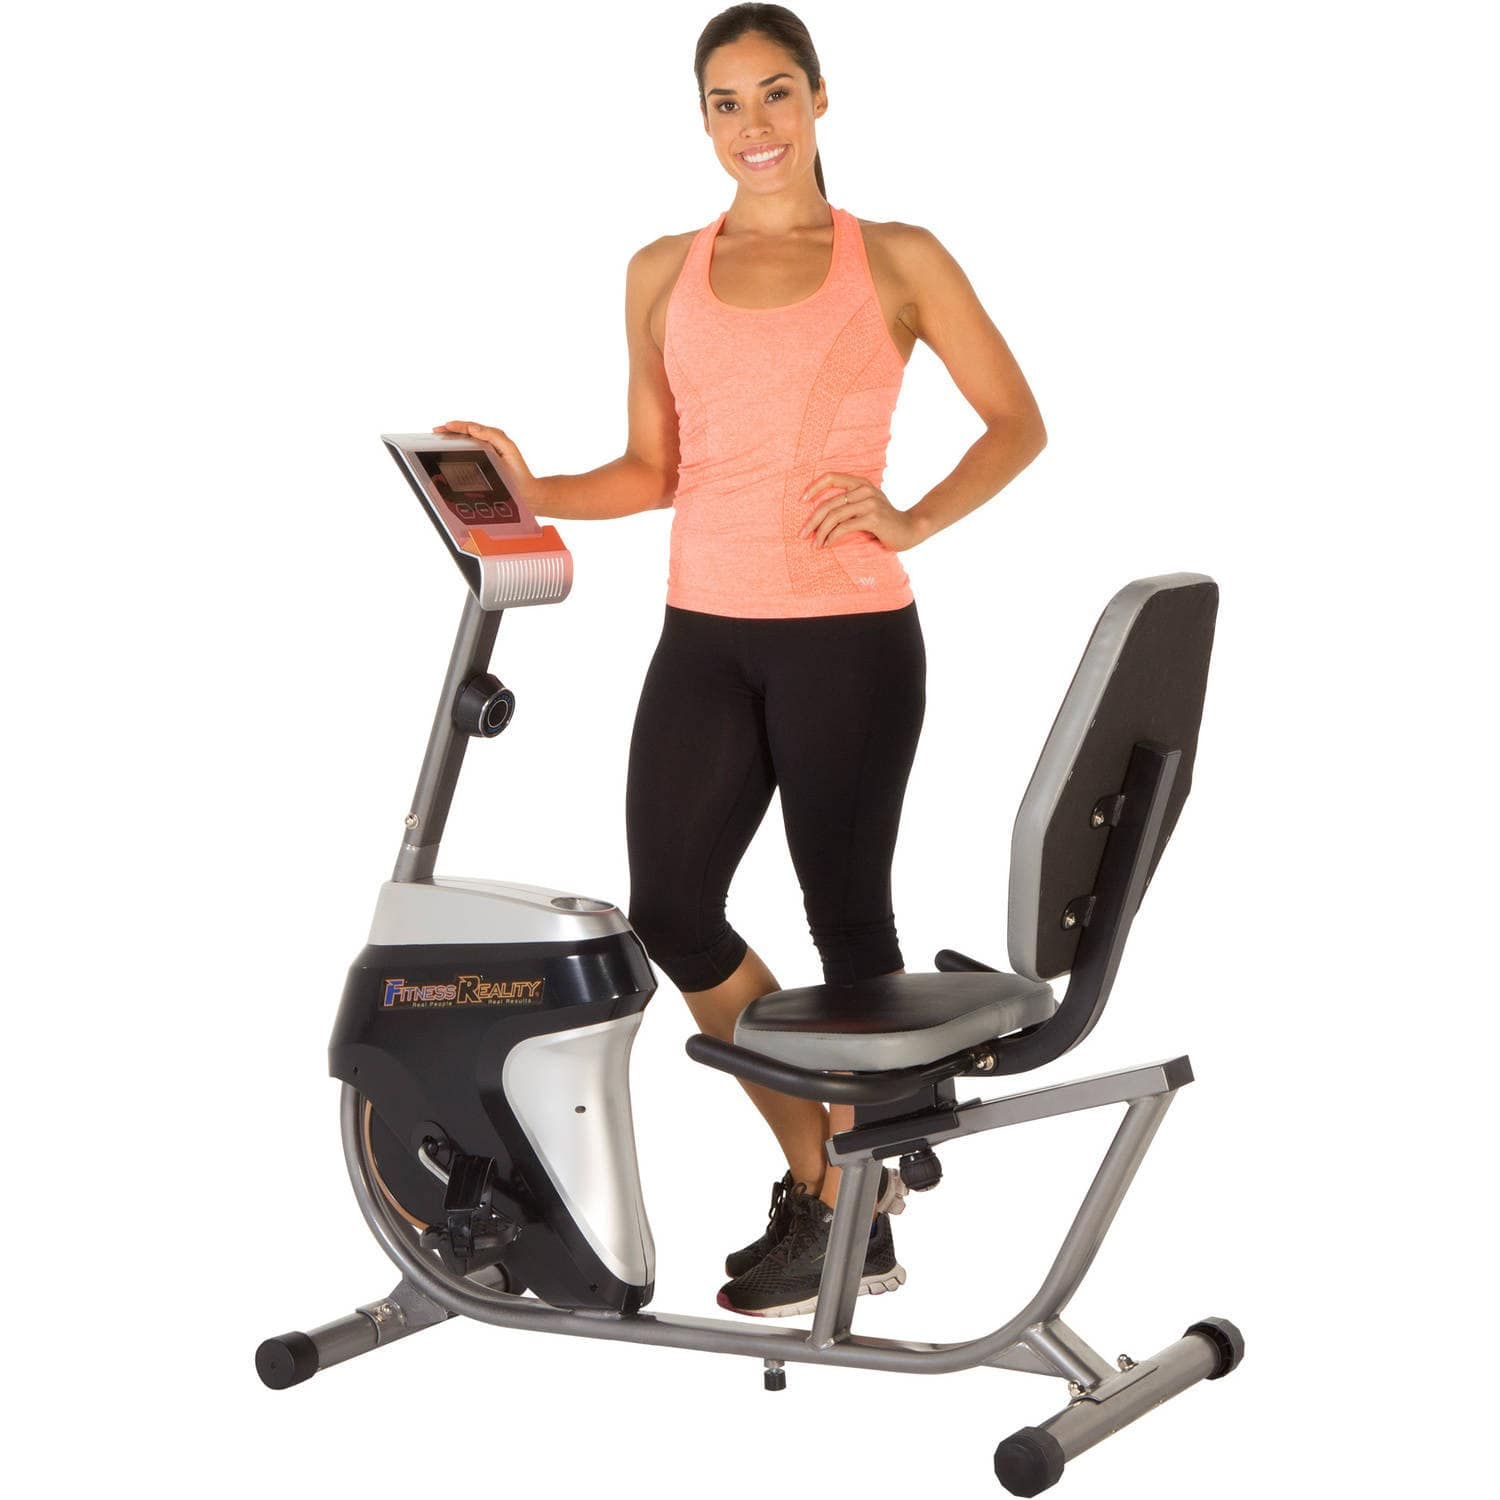 Fitness-Reality-R4000-Recumbent-Exercise-Bike-with-Workout-Goal-Setting-Computer $125 + FS